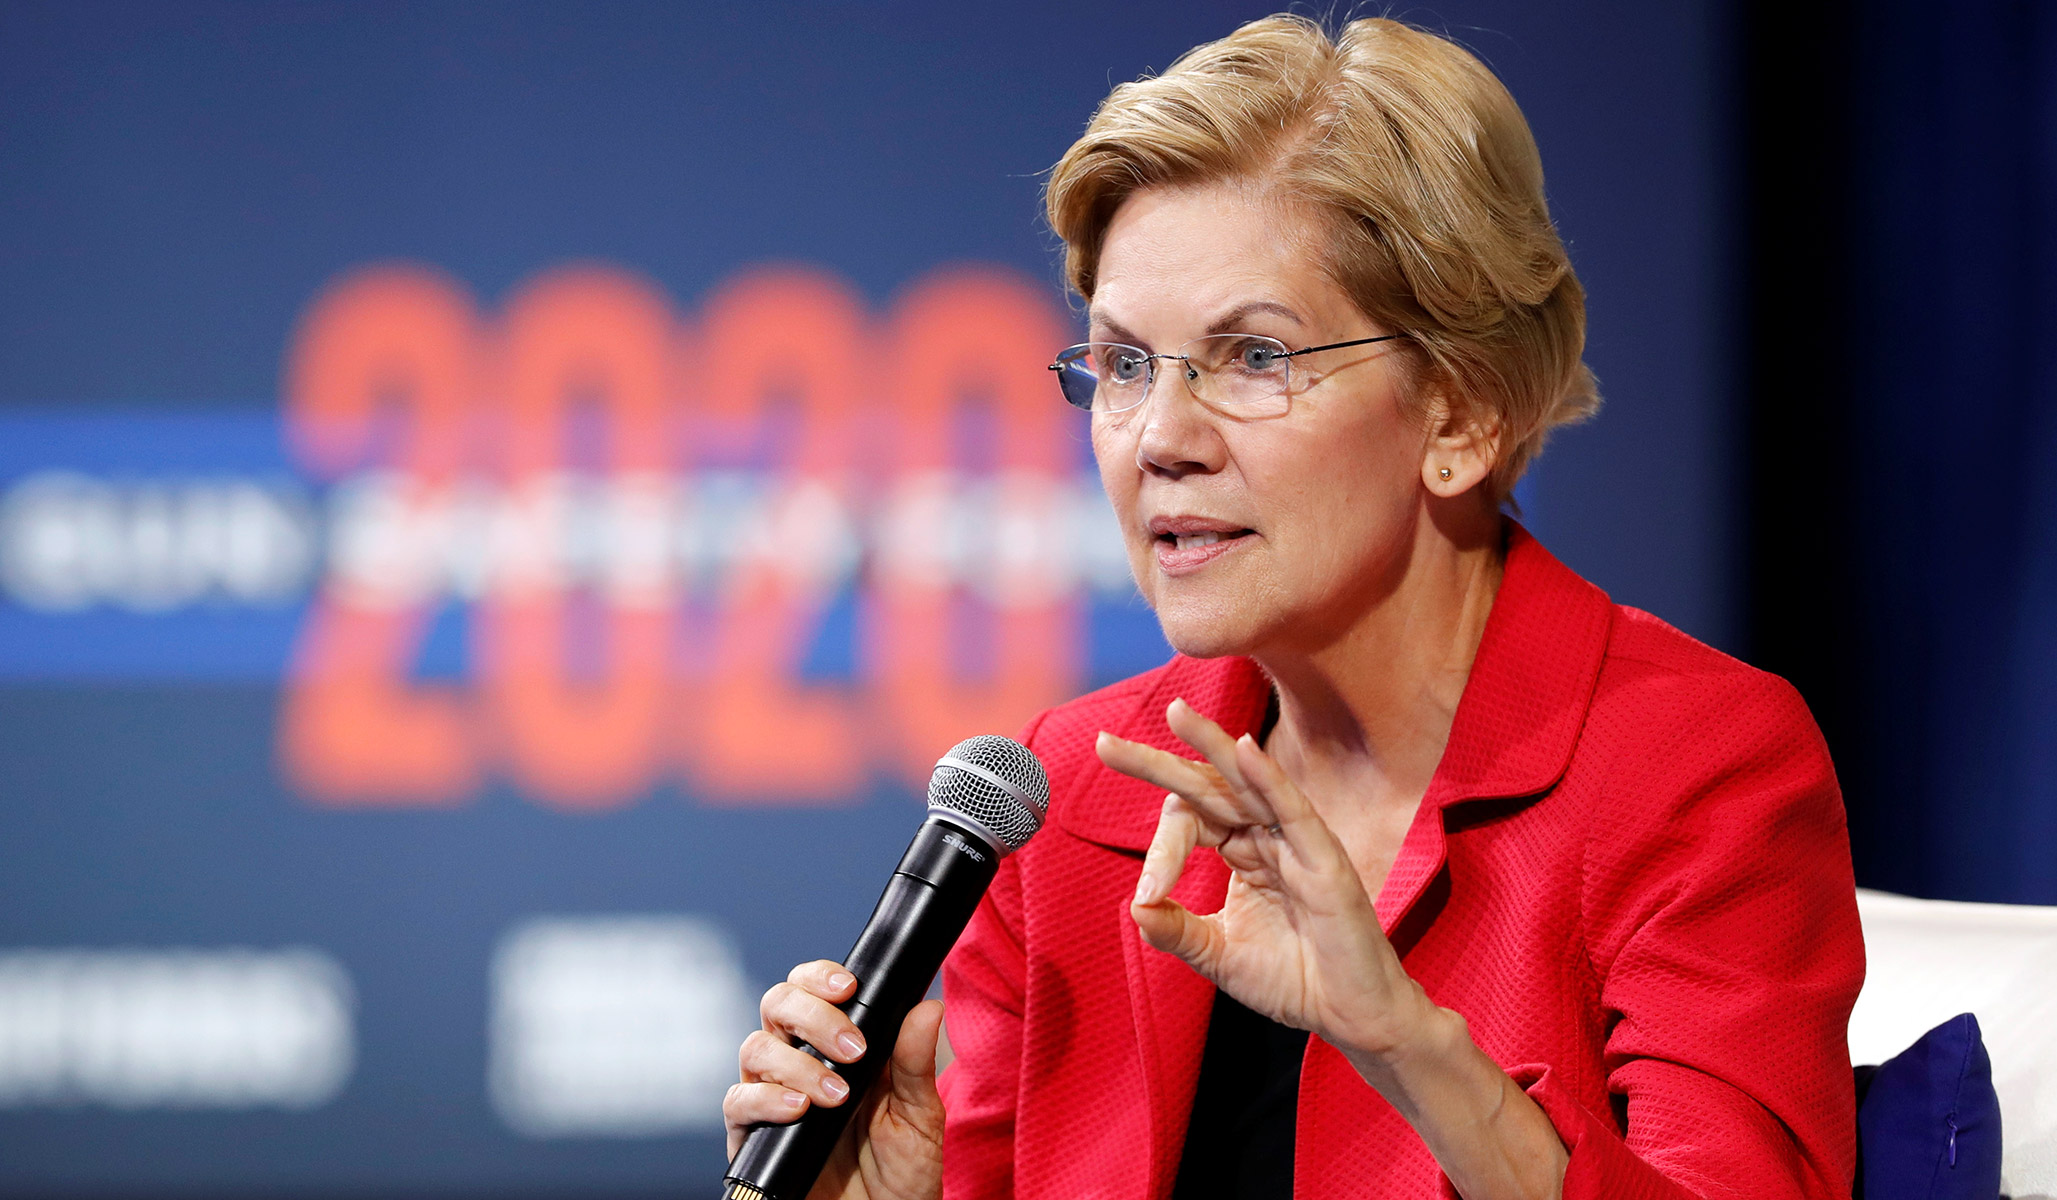 Warren Deletes Infamous DNA Test Tweet One Year After Reveal